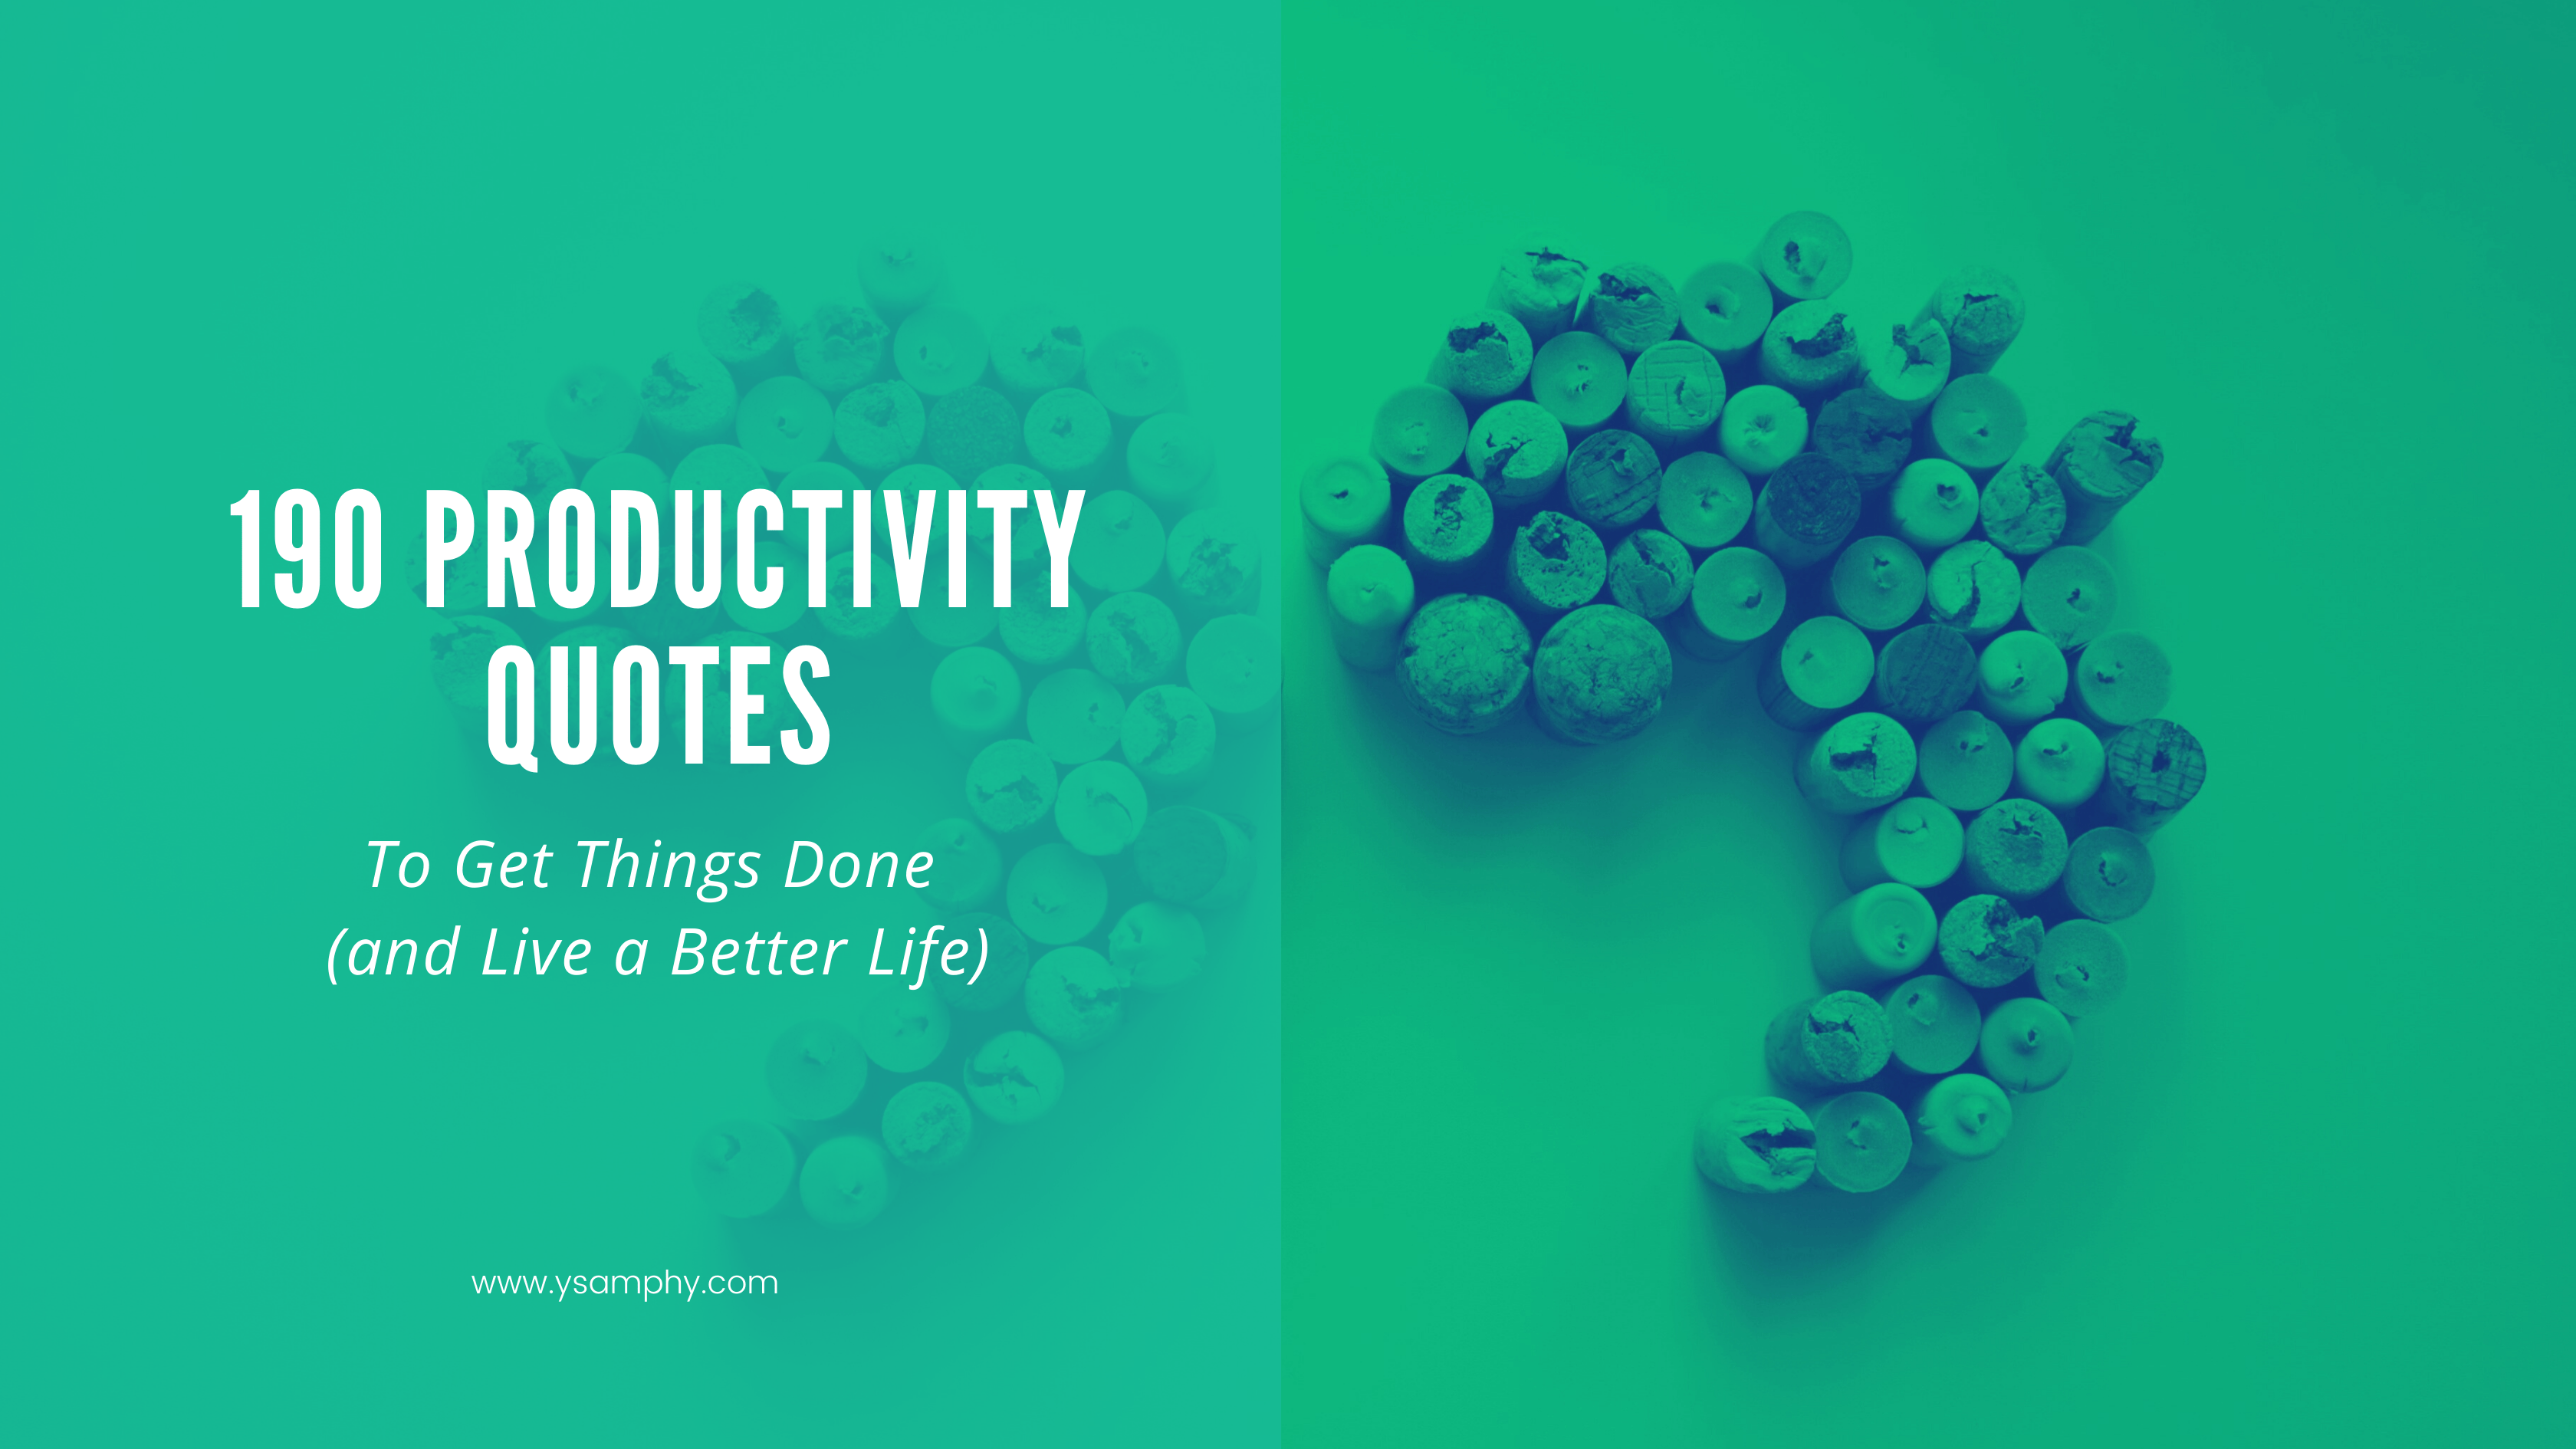 190 Productivity Quotes to Get Things Done